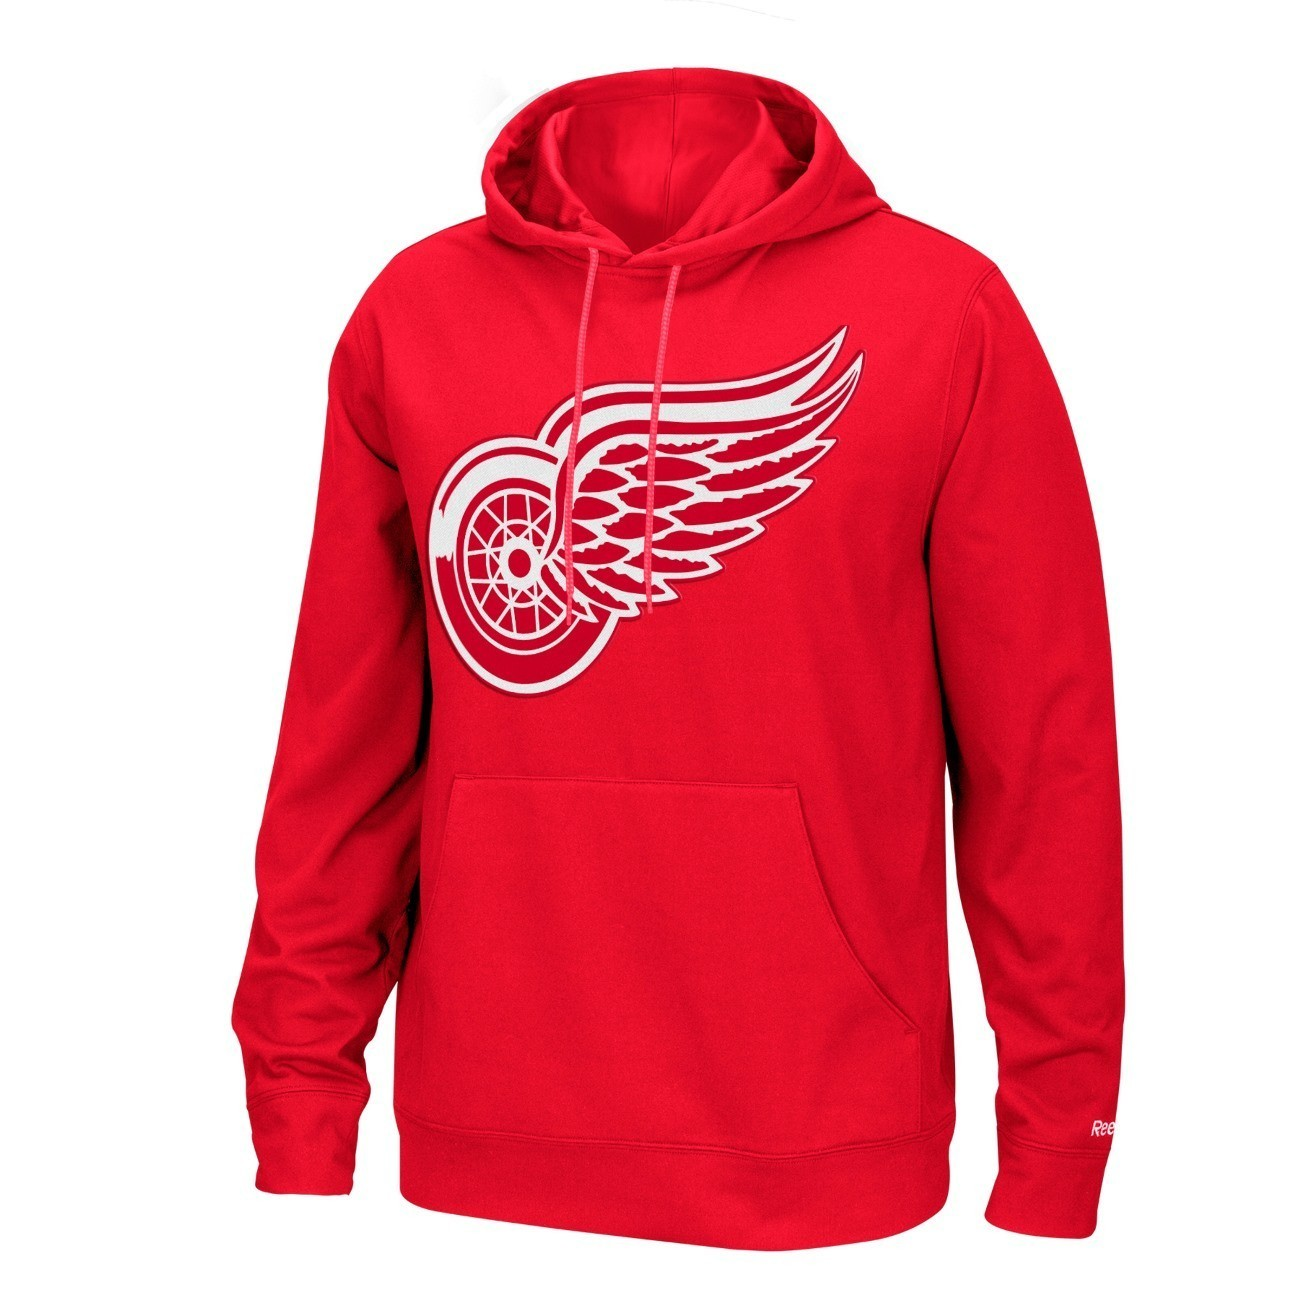 the best attitude f9d5a a0575 Details about Detroit Red Wings Reebok NHL Men's